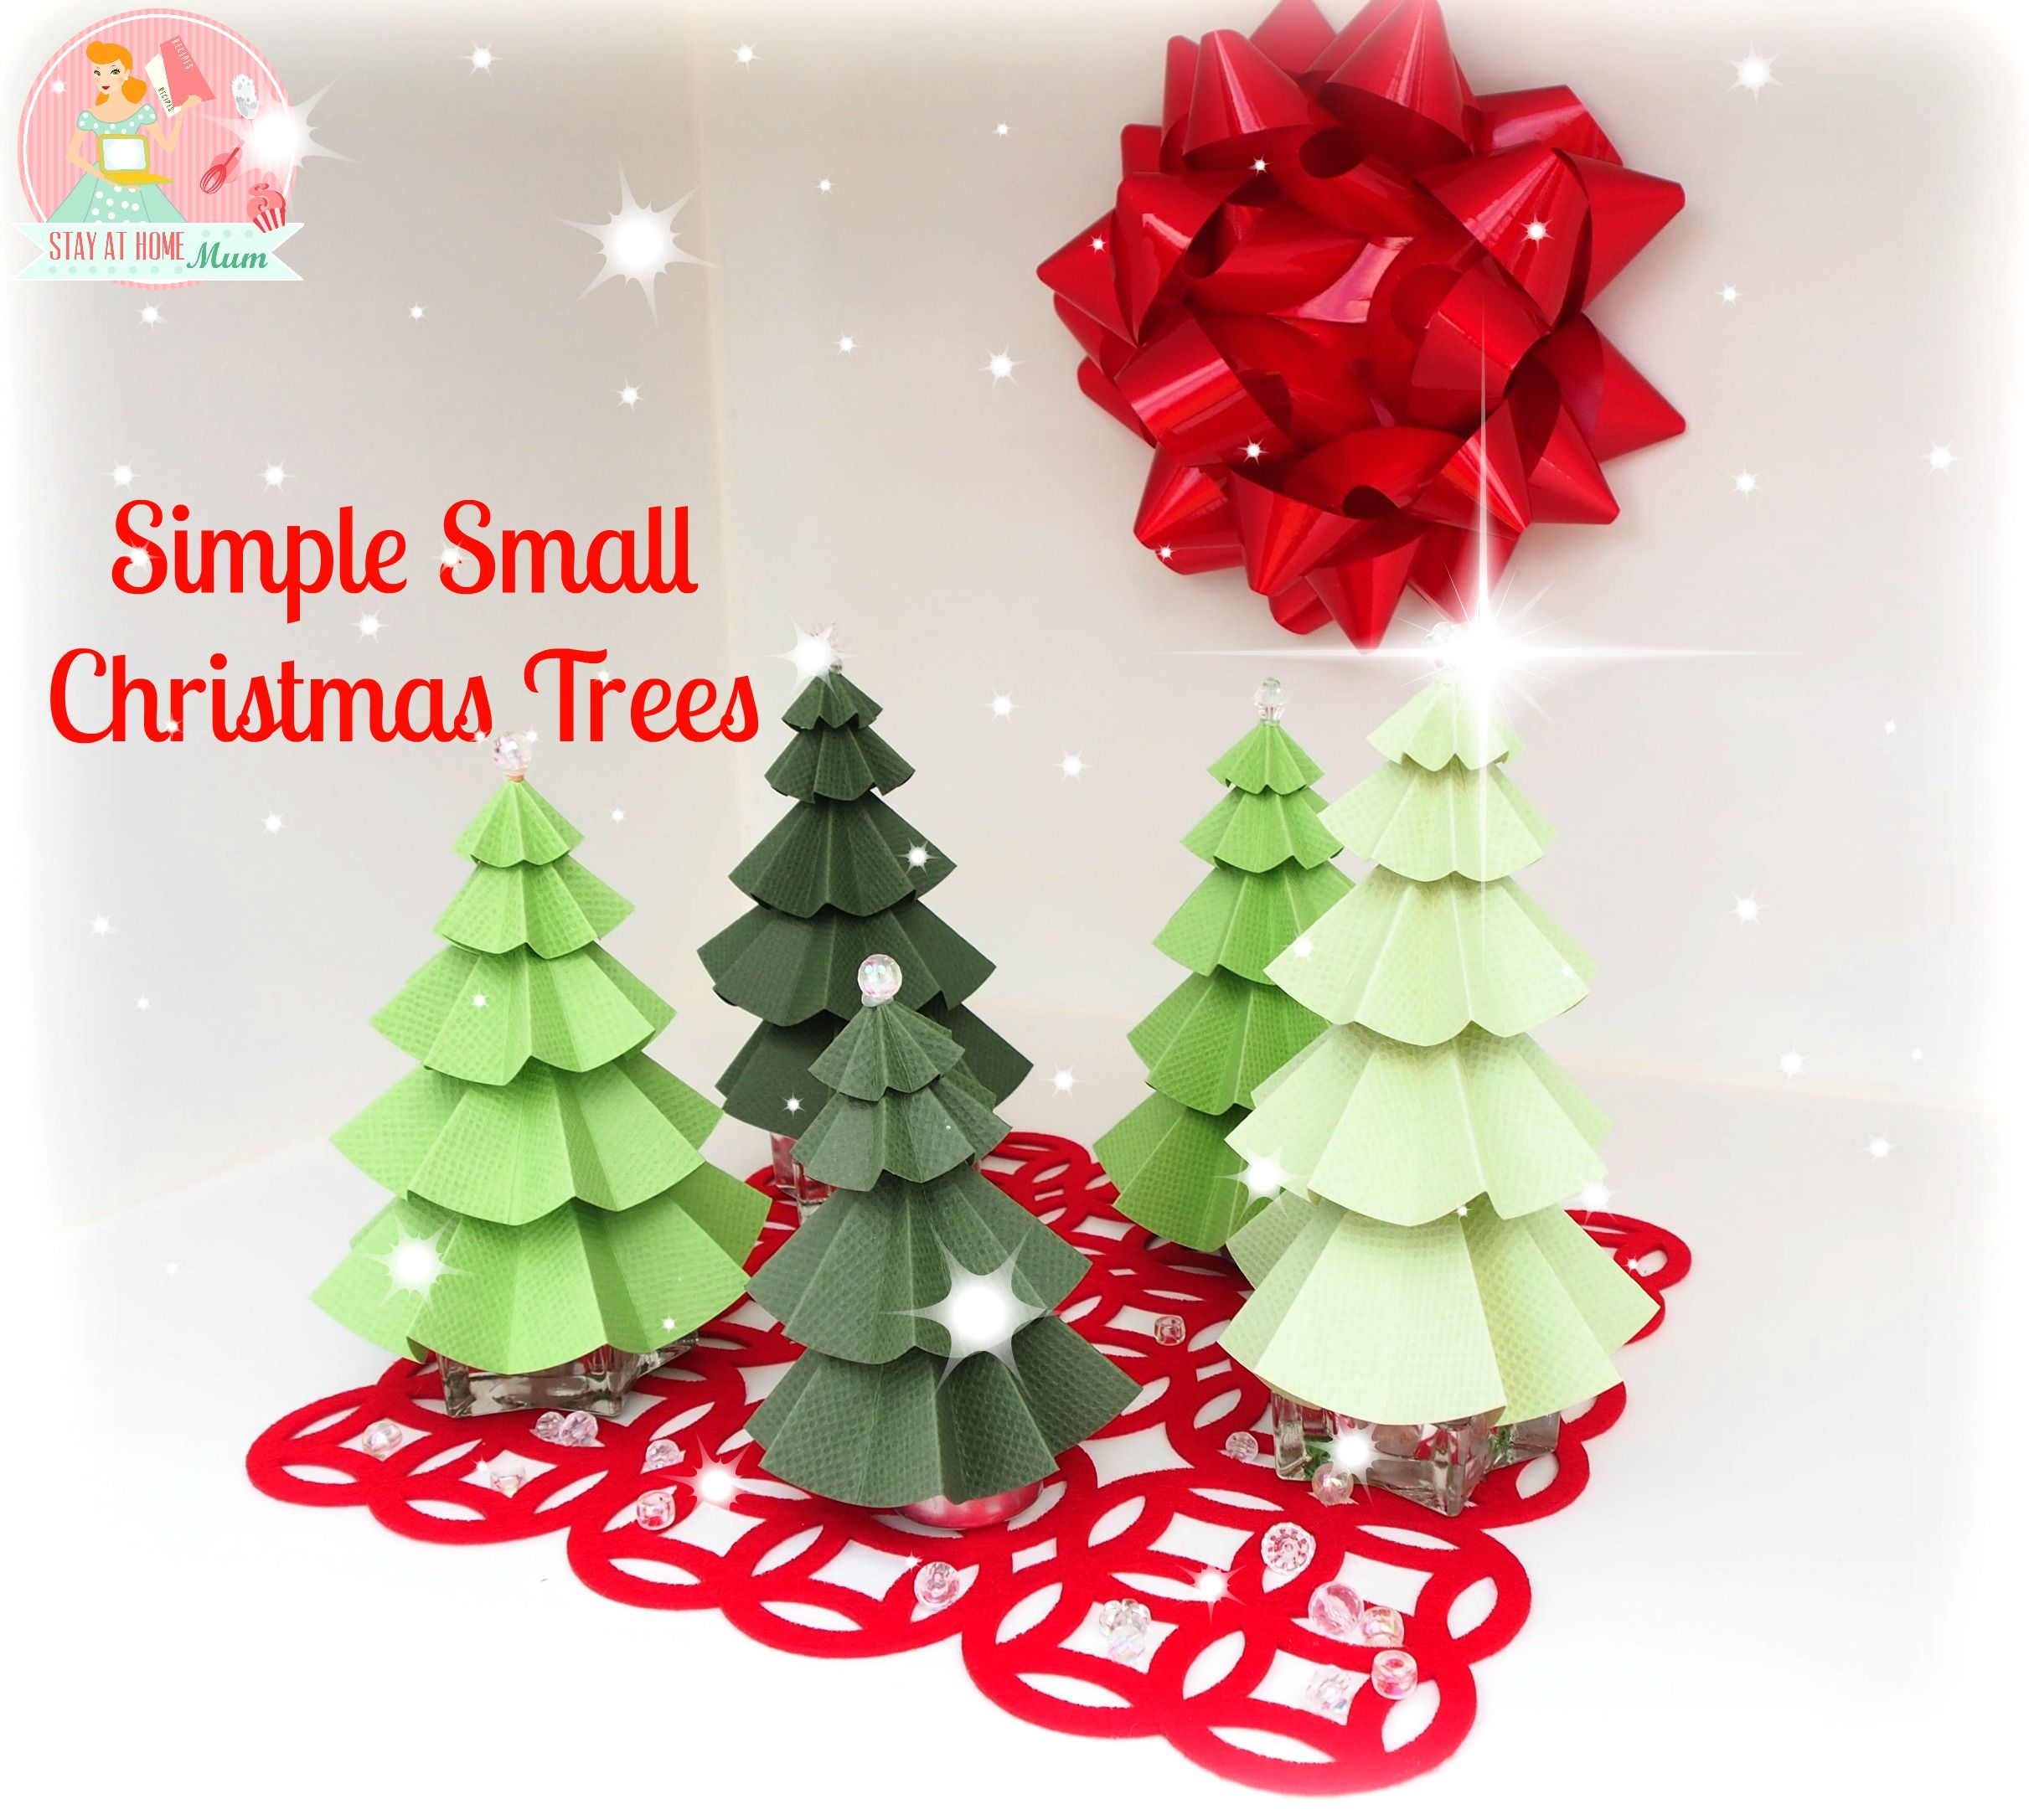 Simple Small Christmas Trees - Stay At Home Mum